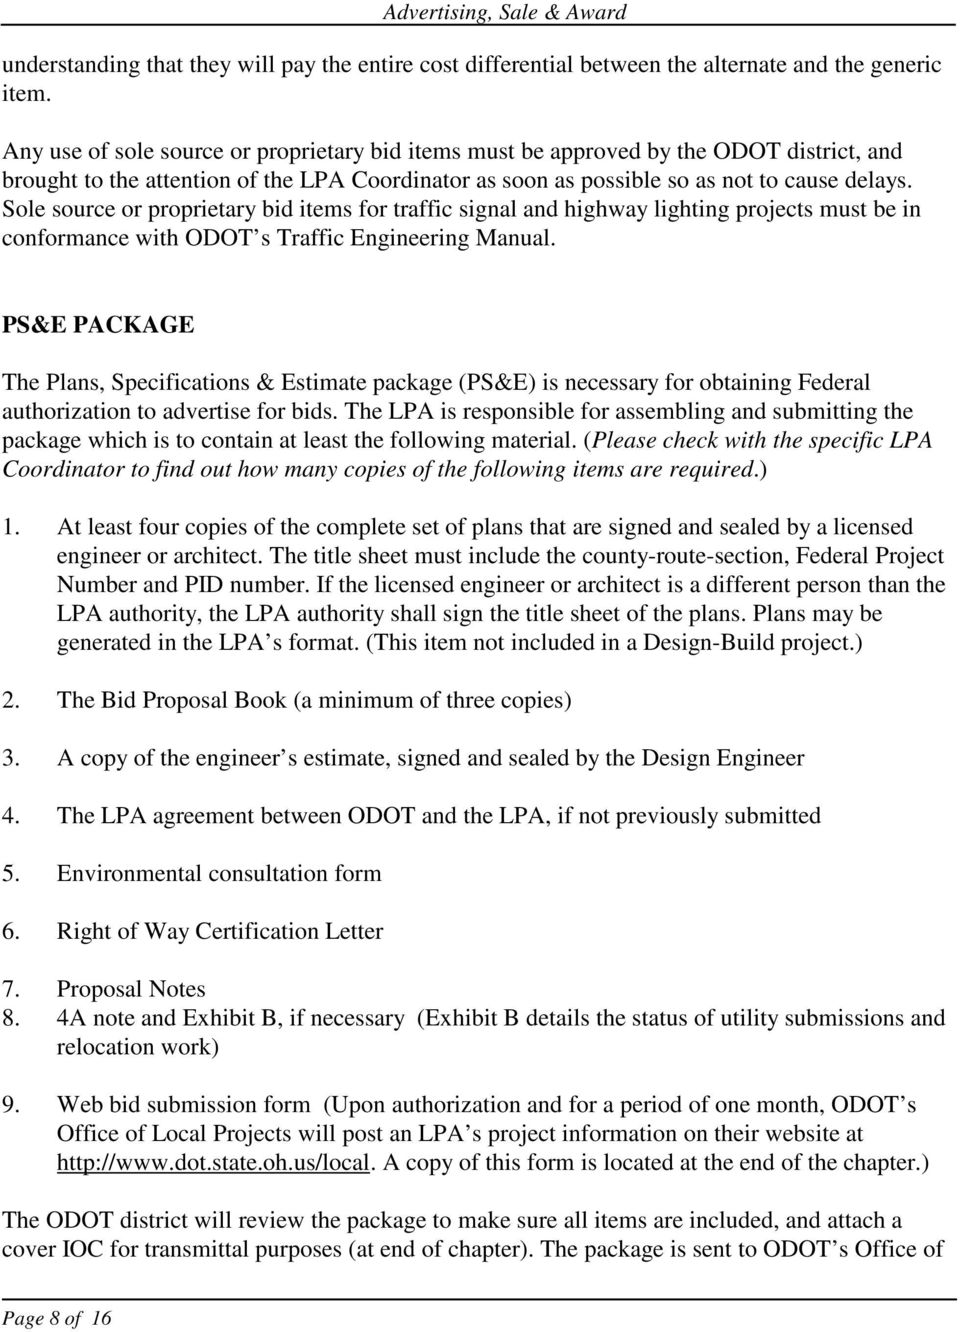 Sole source or proprietary bid items for traffic signal and highway lighting projects must be in conformance with ODOT s Traffic Engineering Manual.